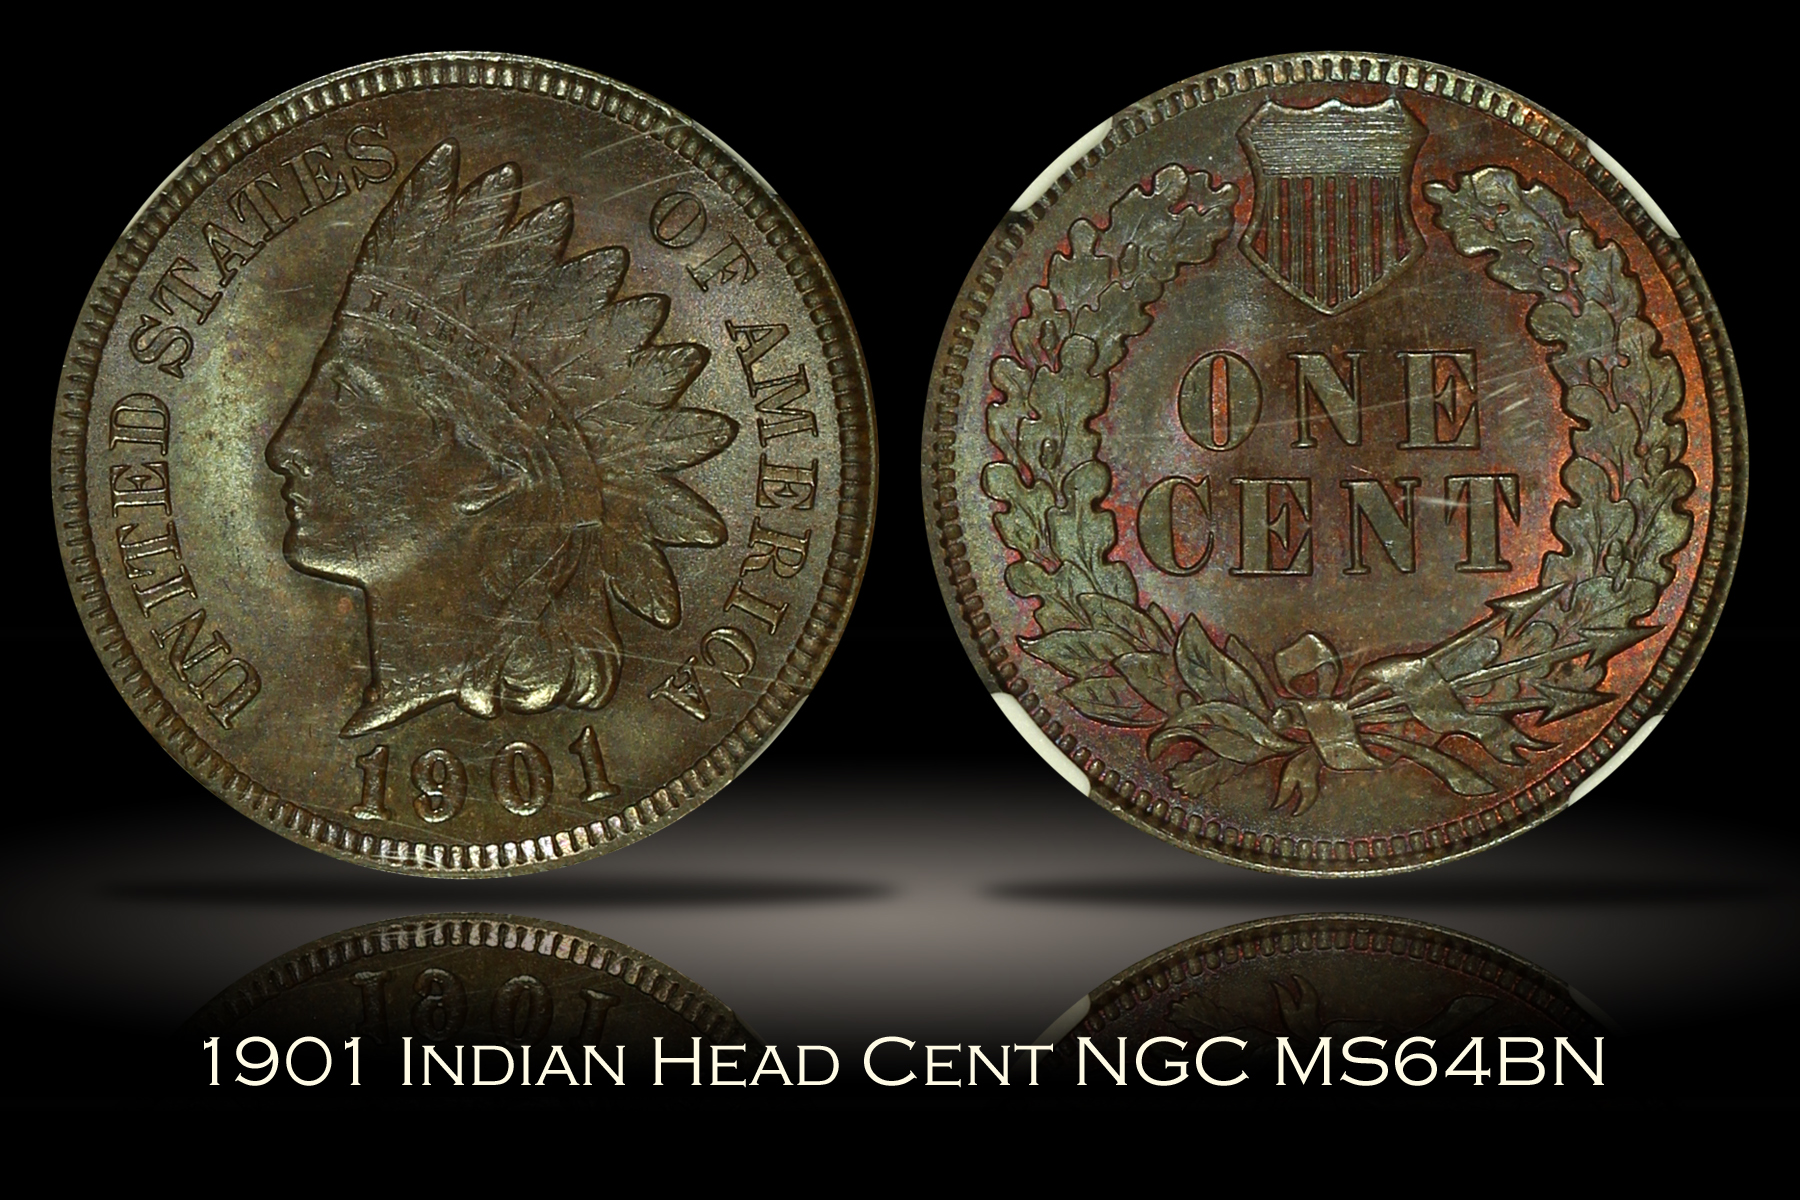 1901 Indian Head Cent NGC MS64BN